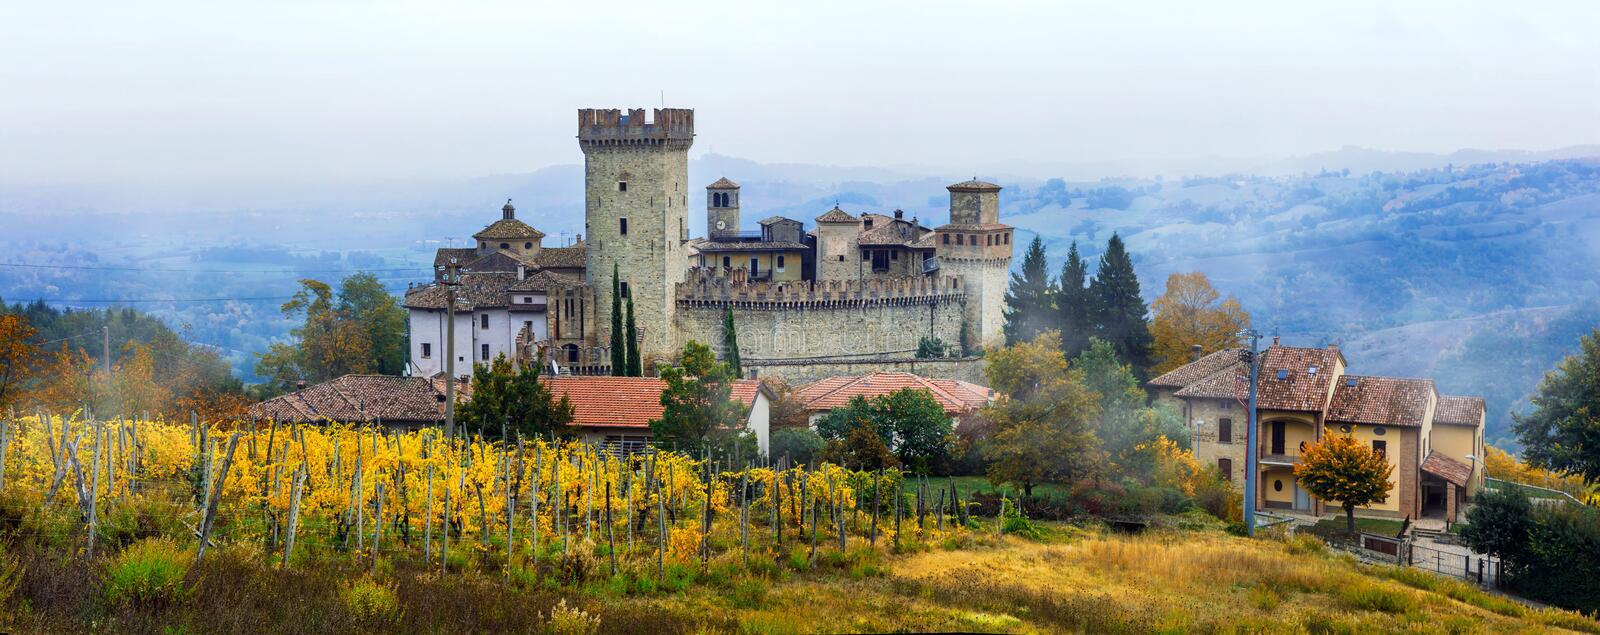 Medieval towns and castles of Italy -Vigoleno with vineyards in. Impressive Vigoleno castle,view with vineyards,Emilia Romagna,Italy stock photography